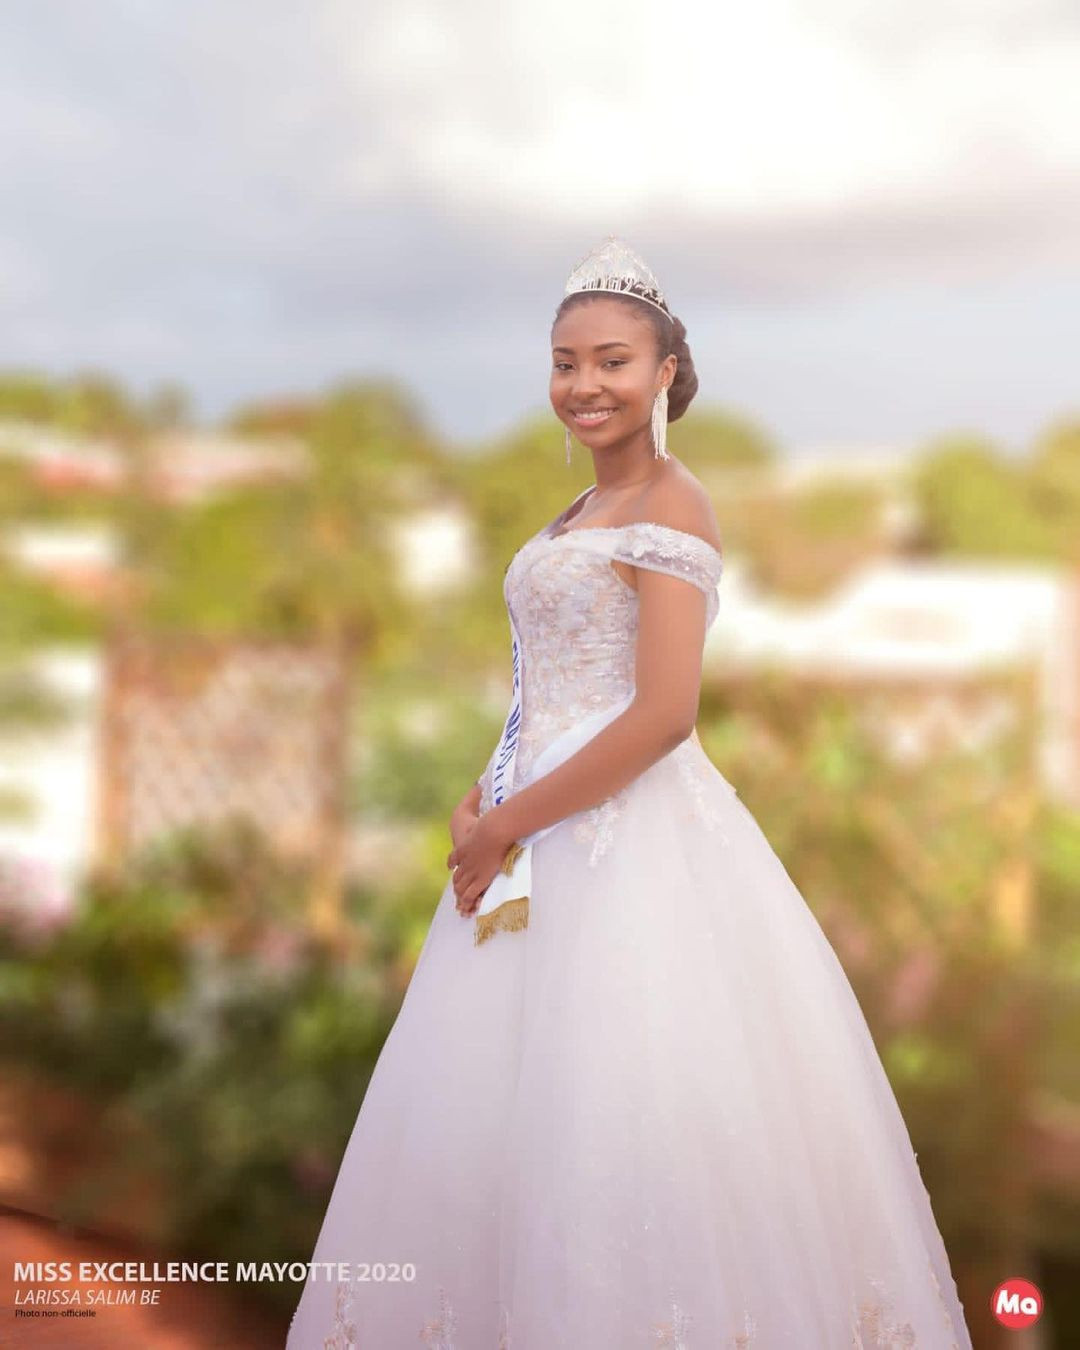 miss mayotte vence miss excellence france 2021.  BbOns4